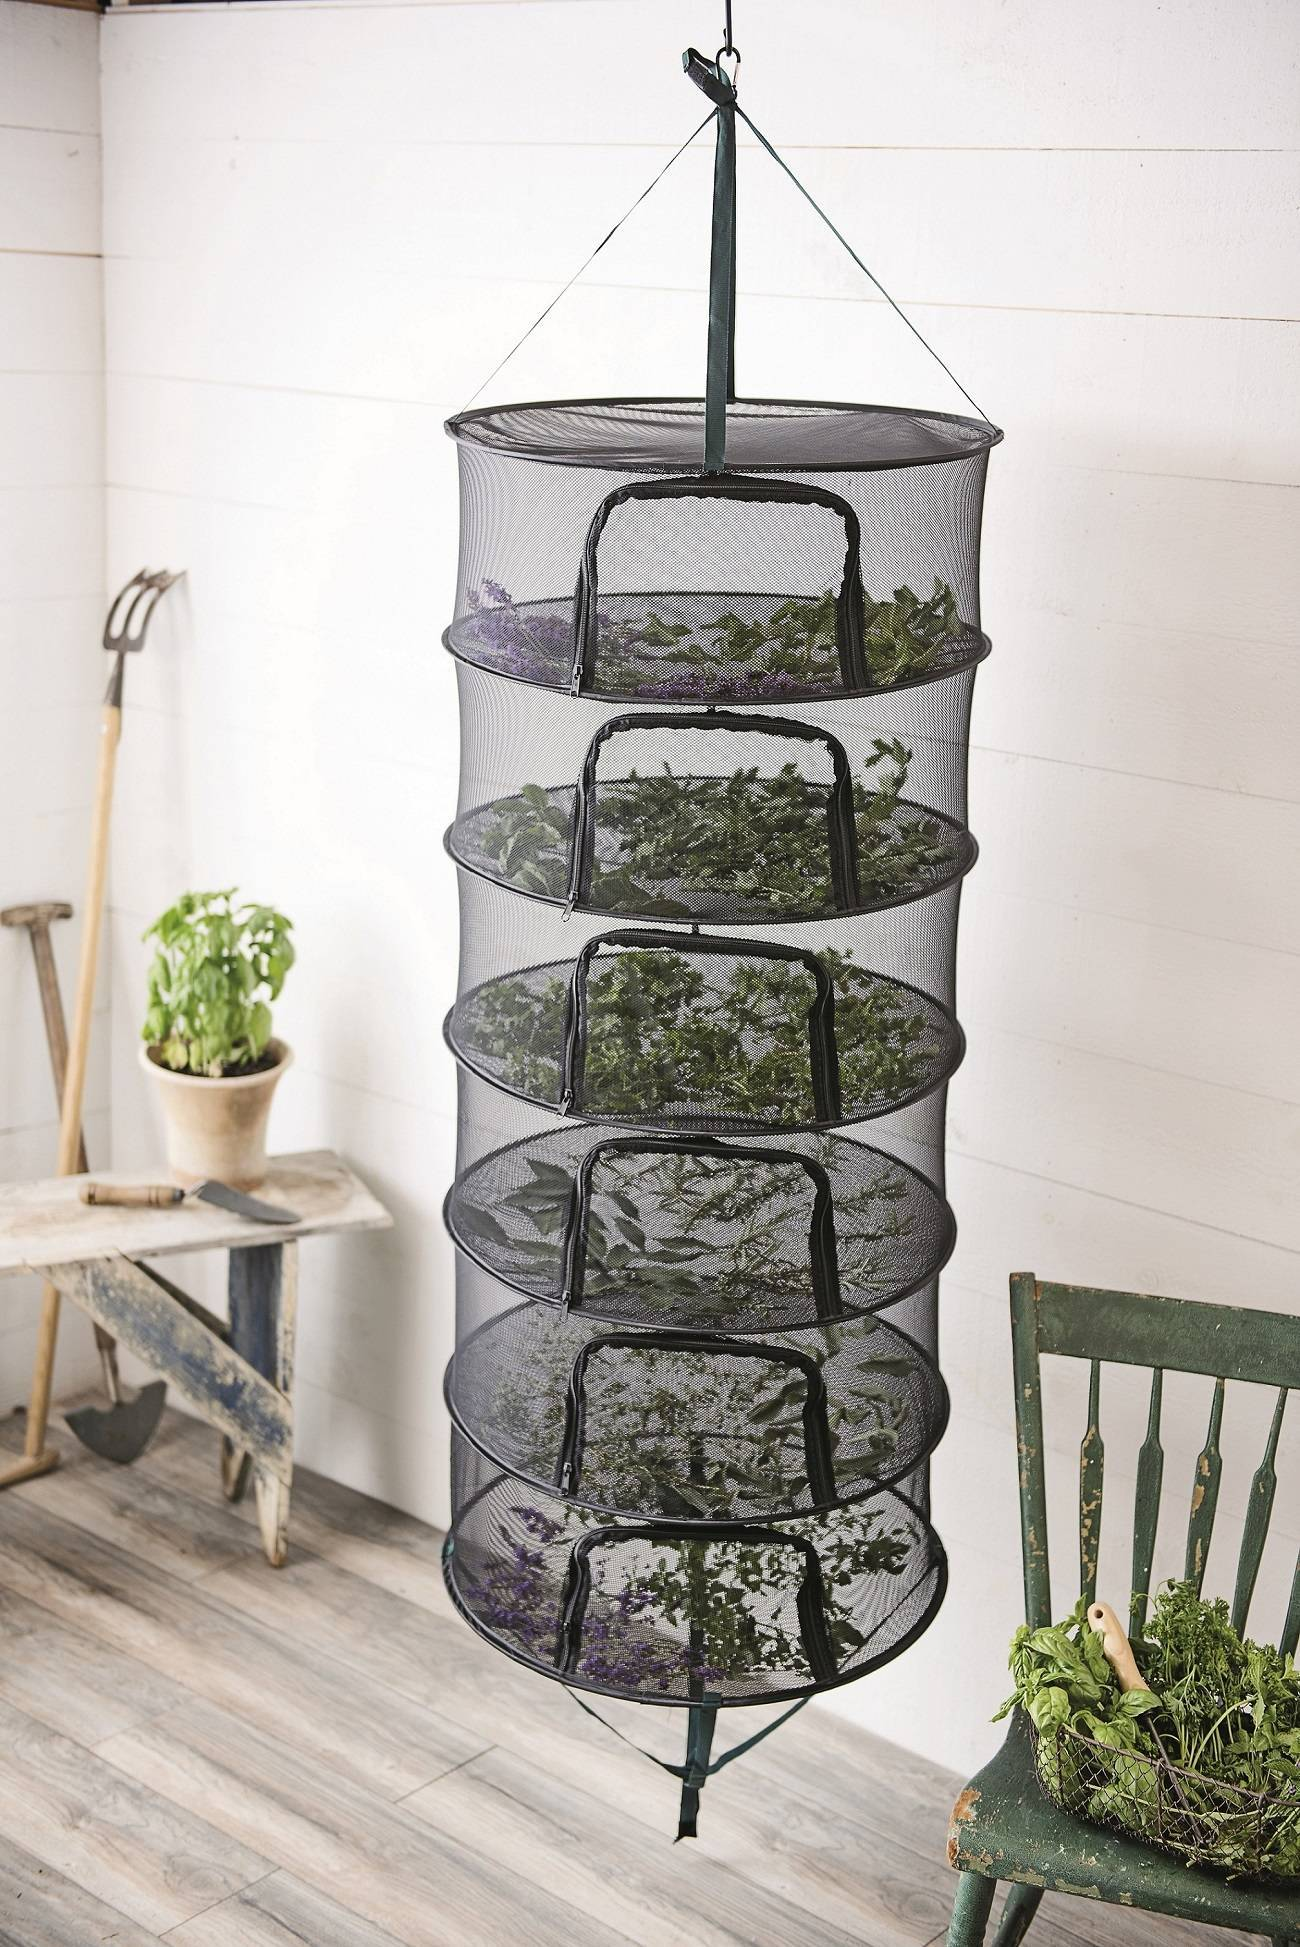 Drying is one of the easiest ways to preserve garden-fresh herbs.